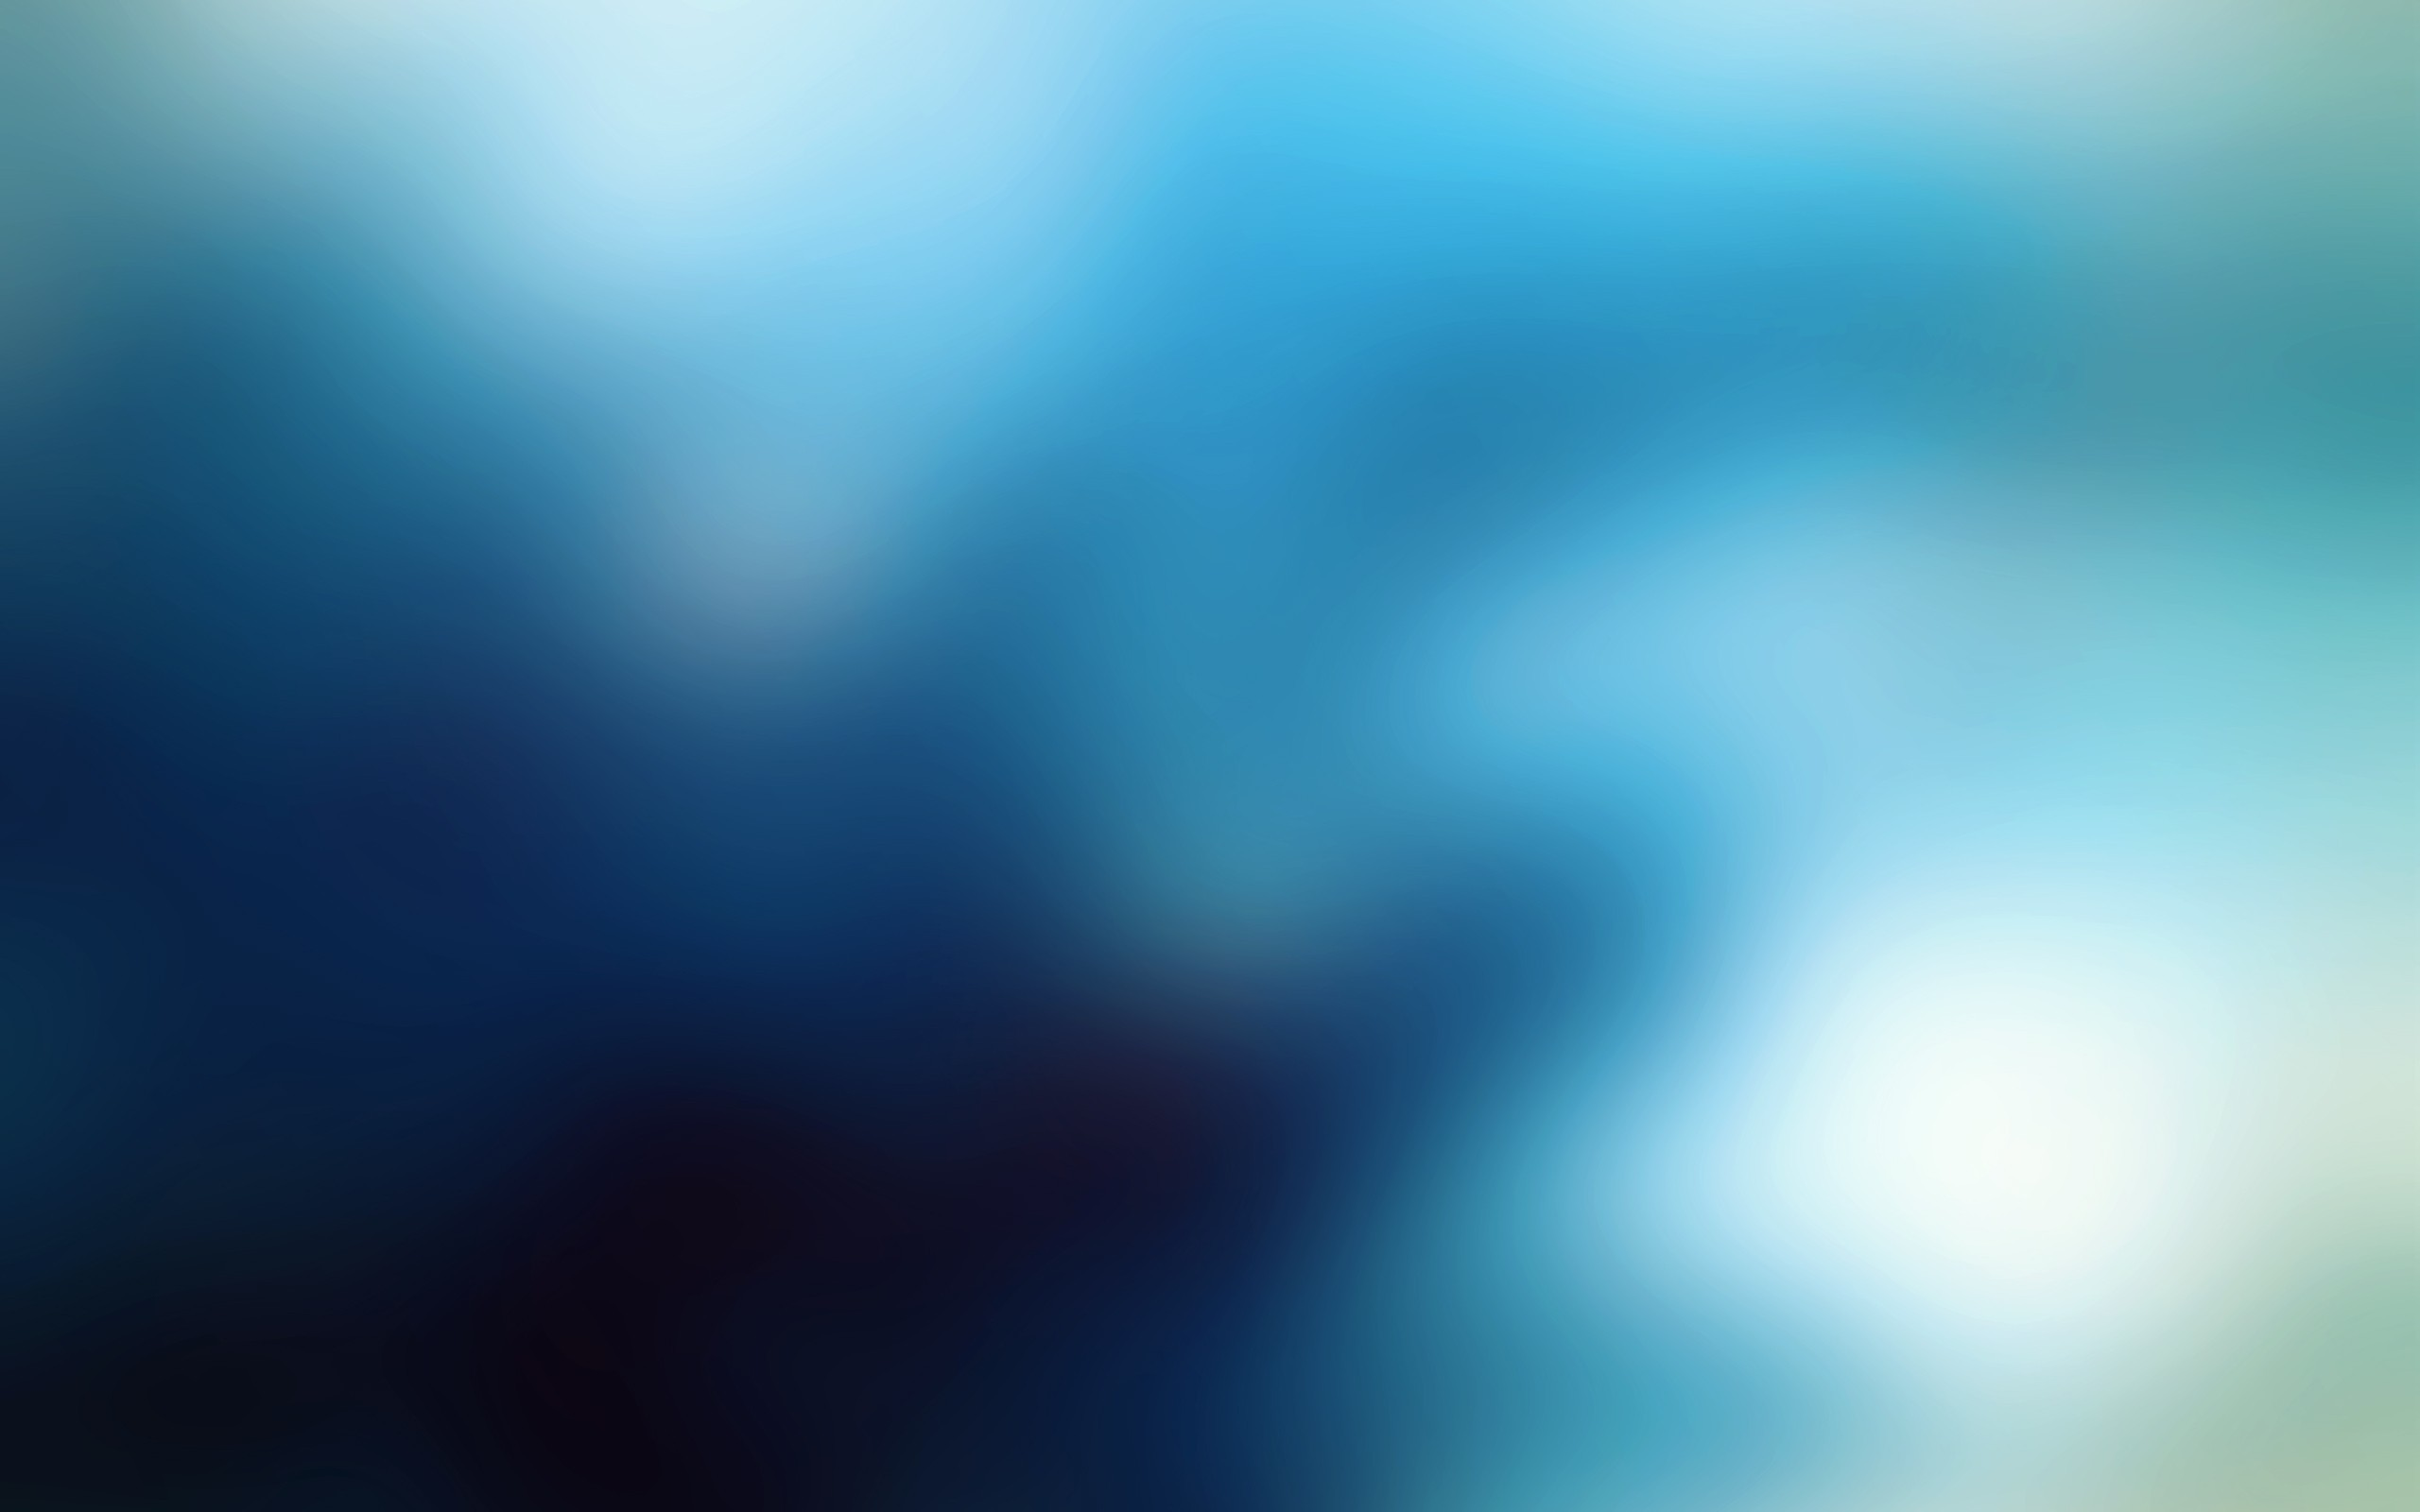 blue gaussian blur HD Wallpaper